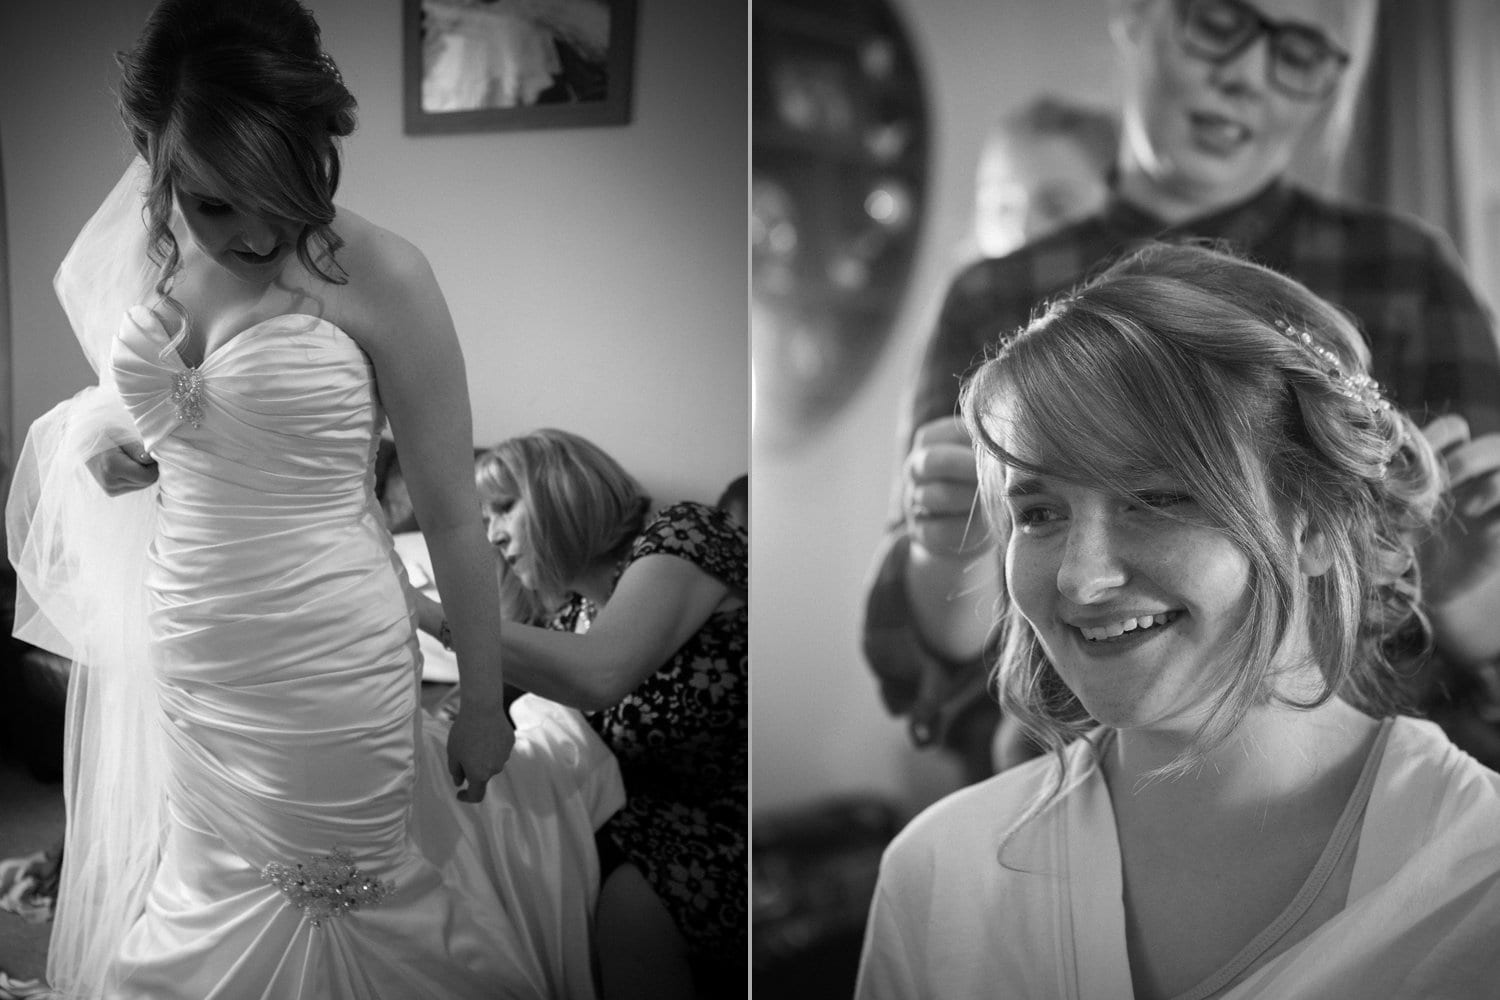 Hexham Abbey Wedding, getting ready